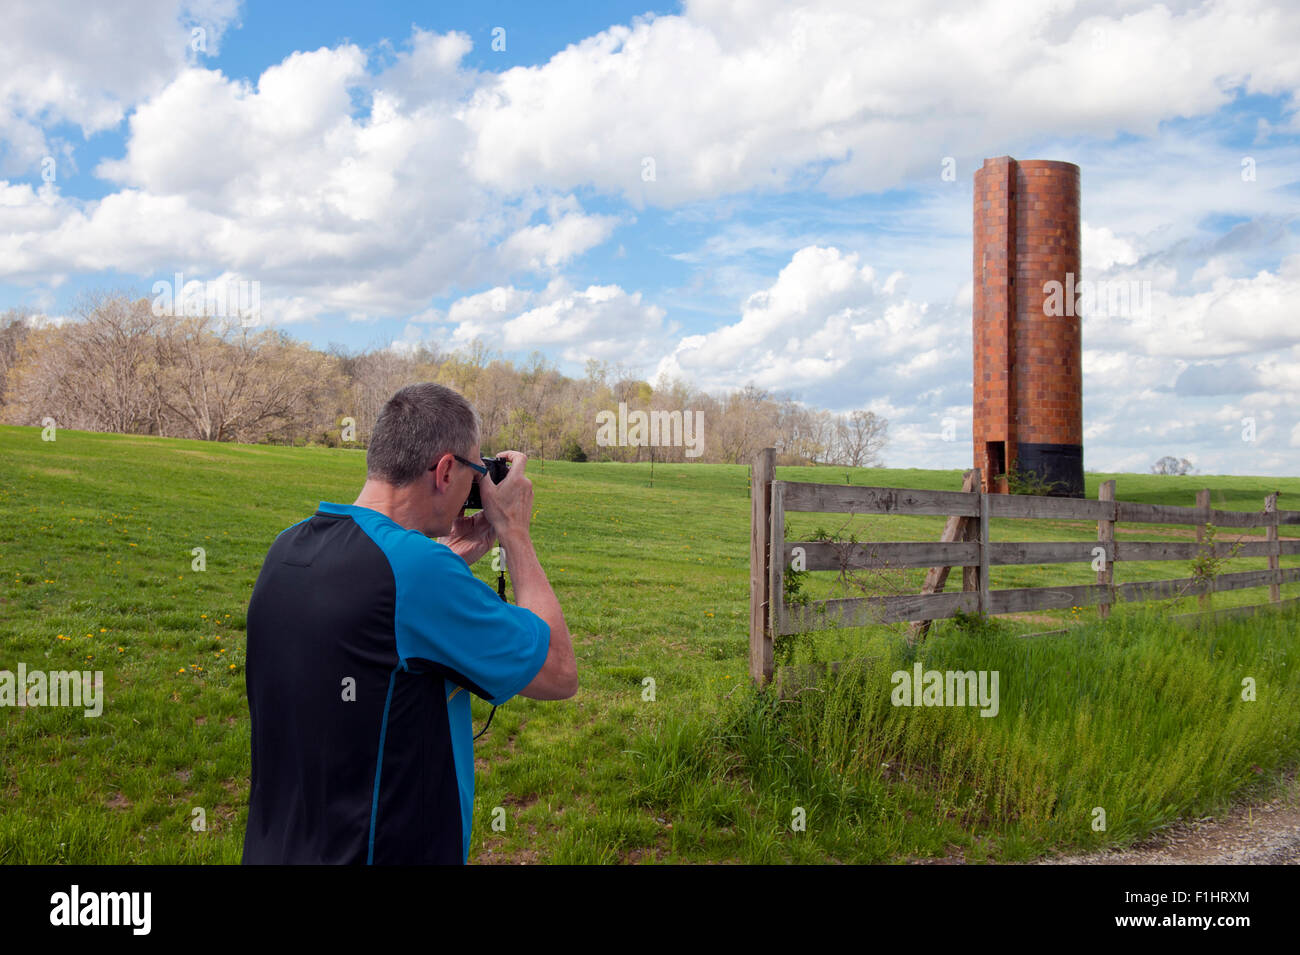 Photographer taking a picture of an old unused tile silo in Shenandoah Valley, Virginia USA. - Stock Image